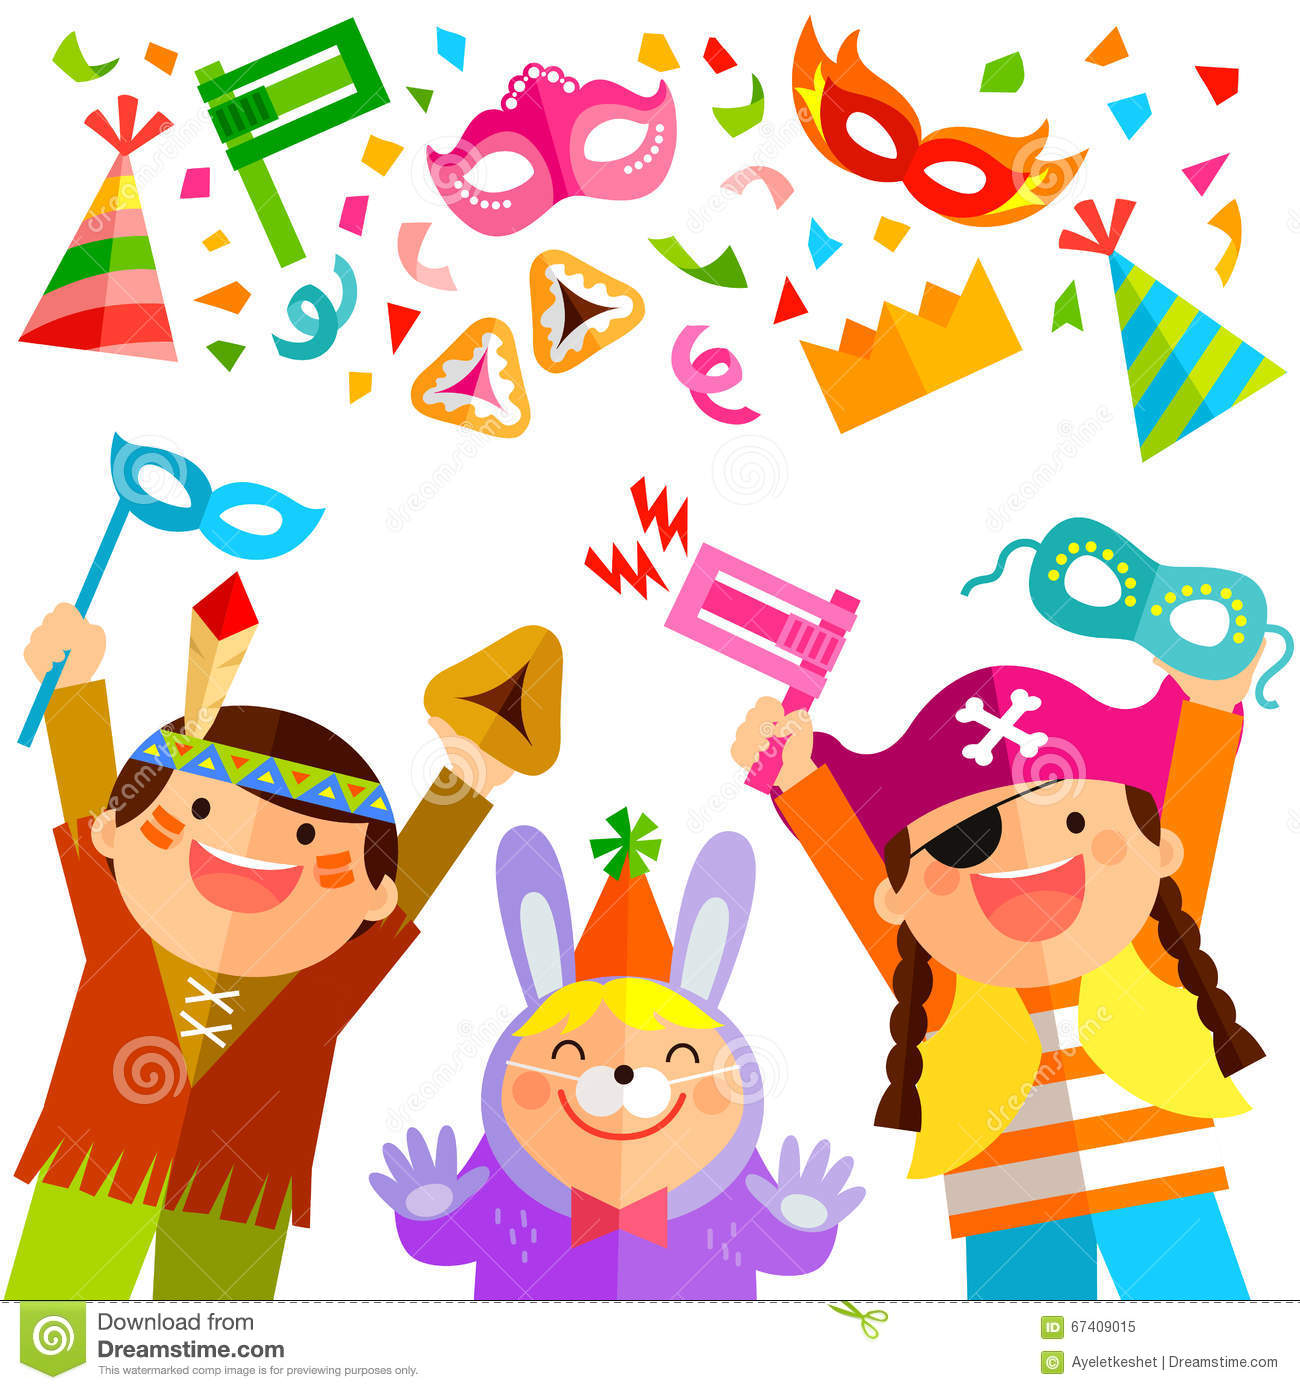 Purim Elements And Kids Stock Vector - Image: 67409015